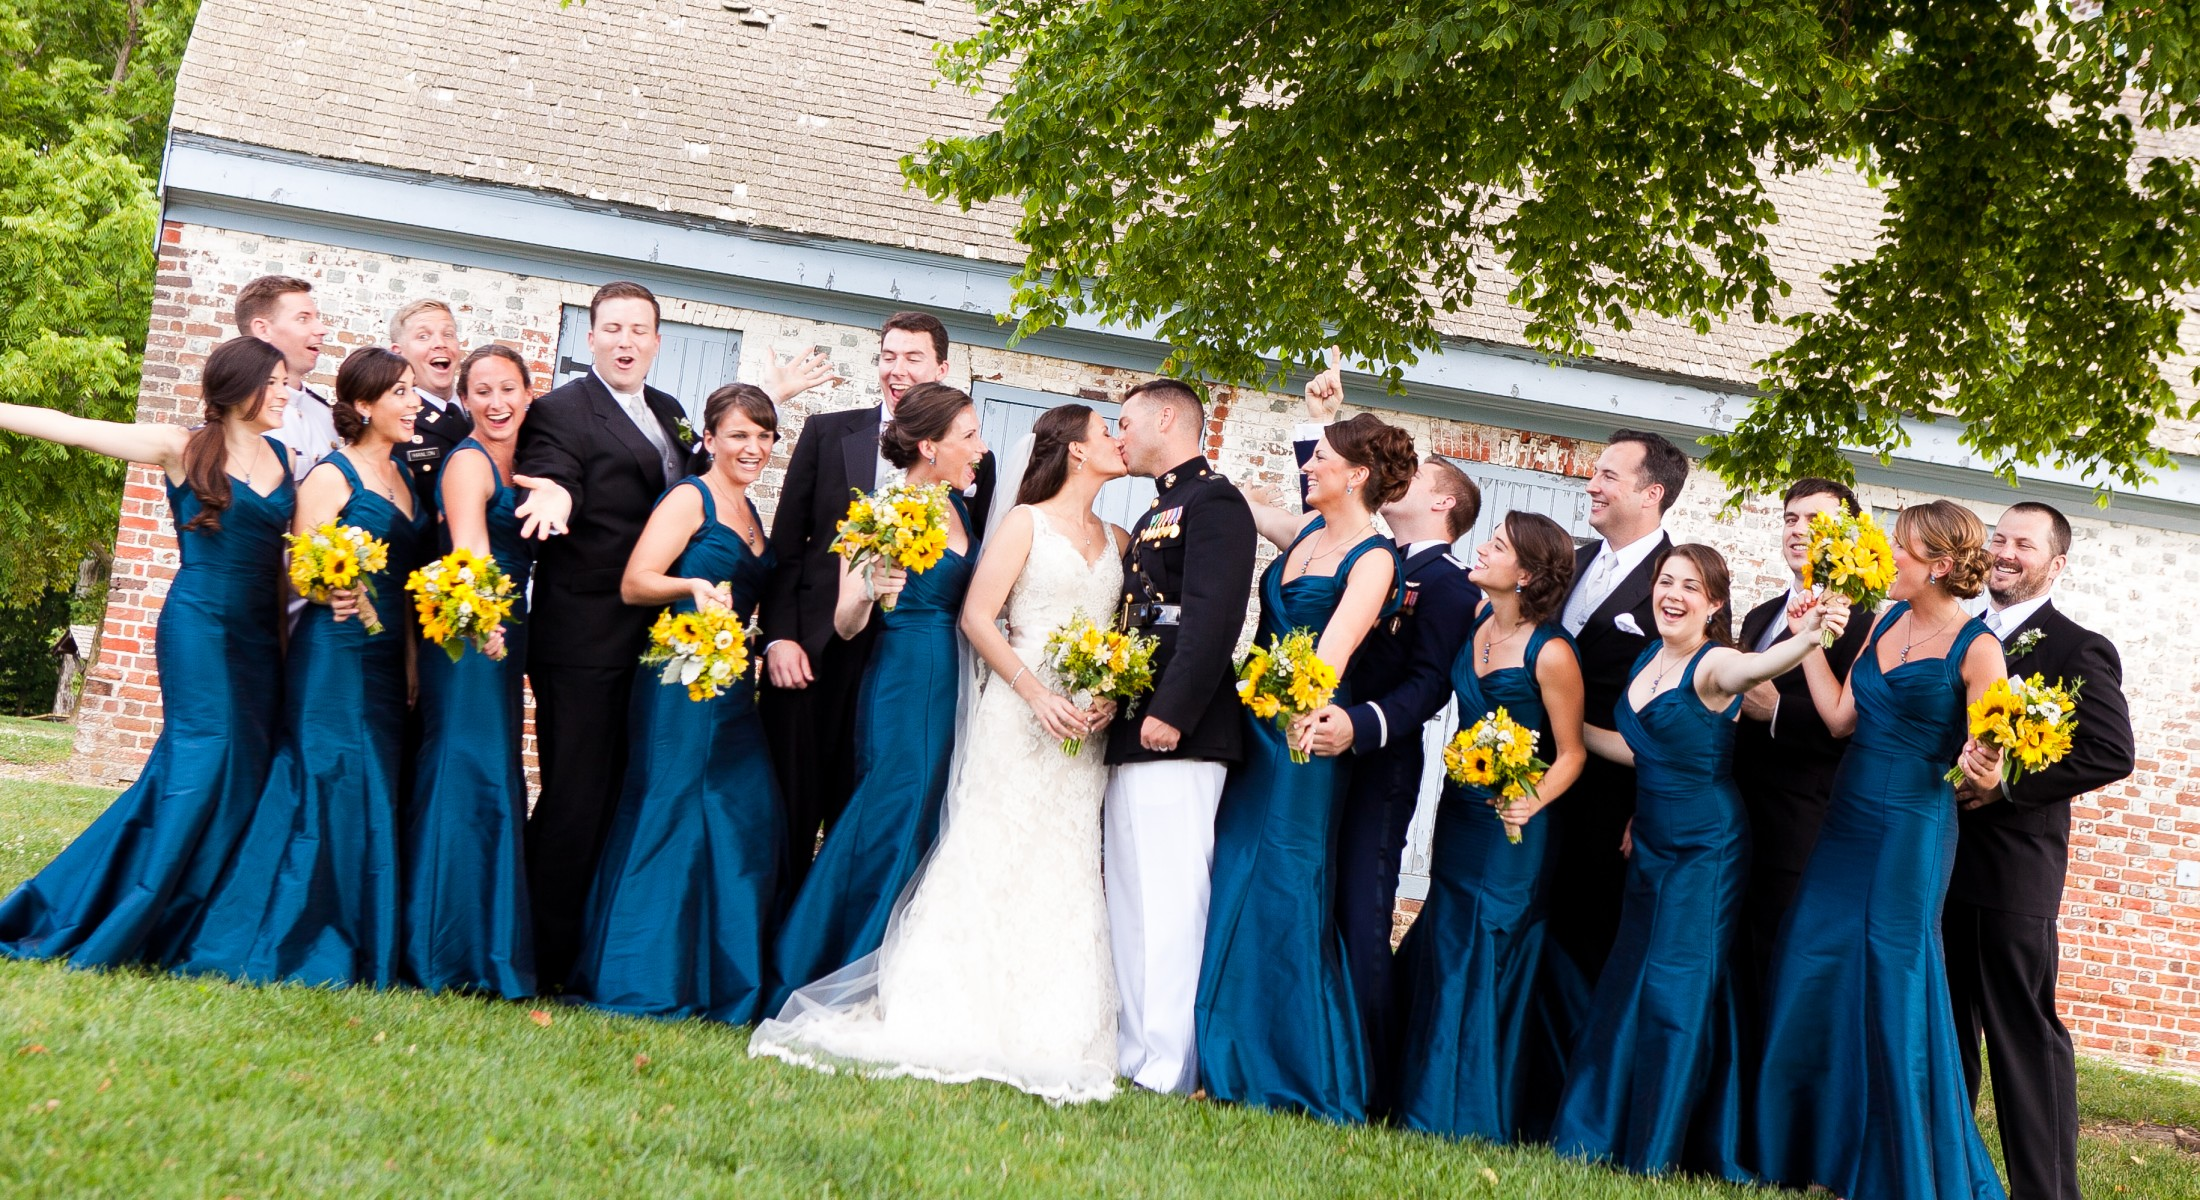 Military Wedding - Blue & Yellow Color Theme